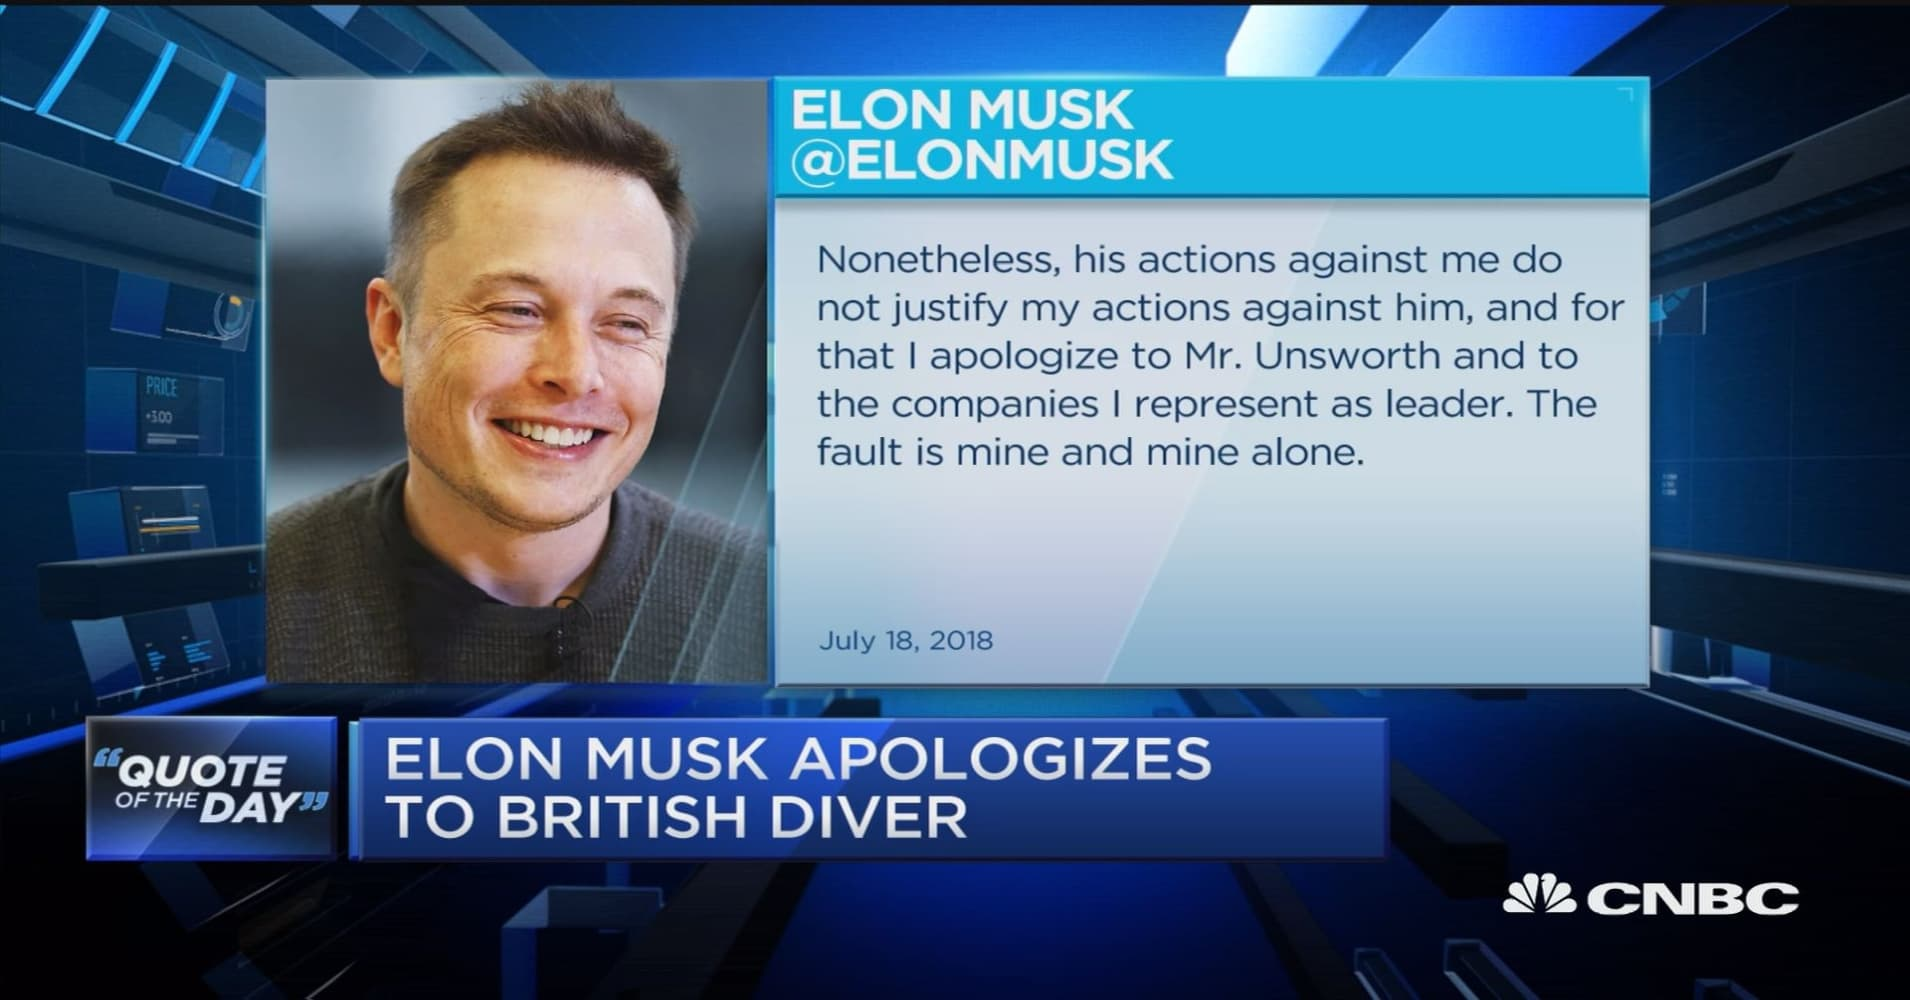 elon musk apologizes to british diver after investor letter